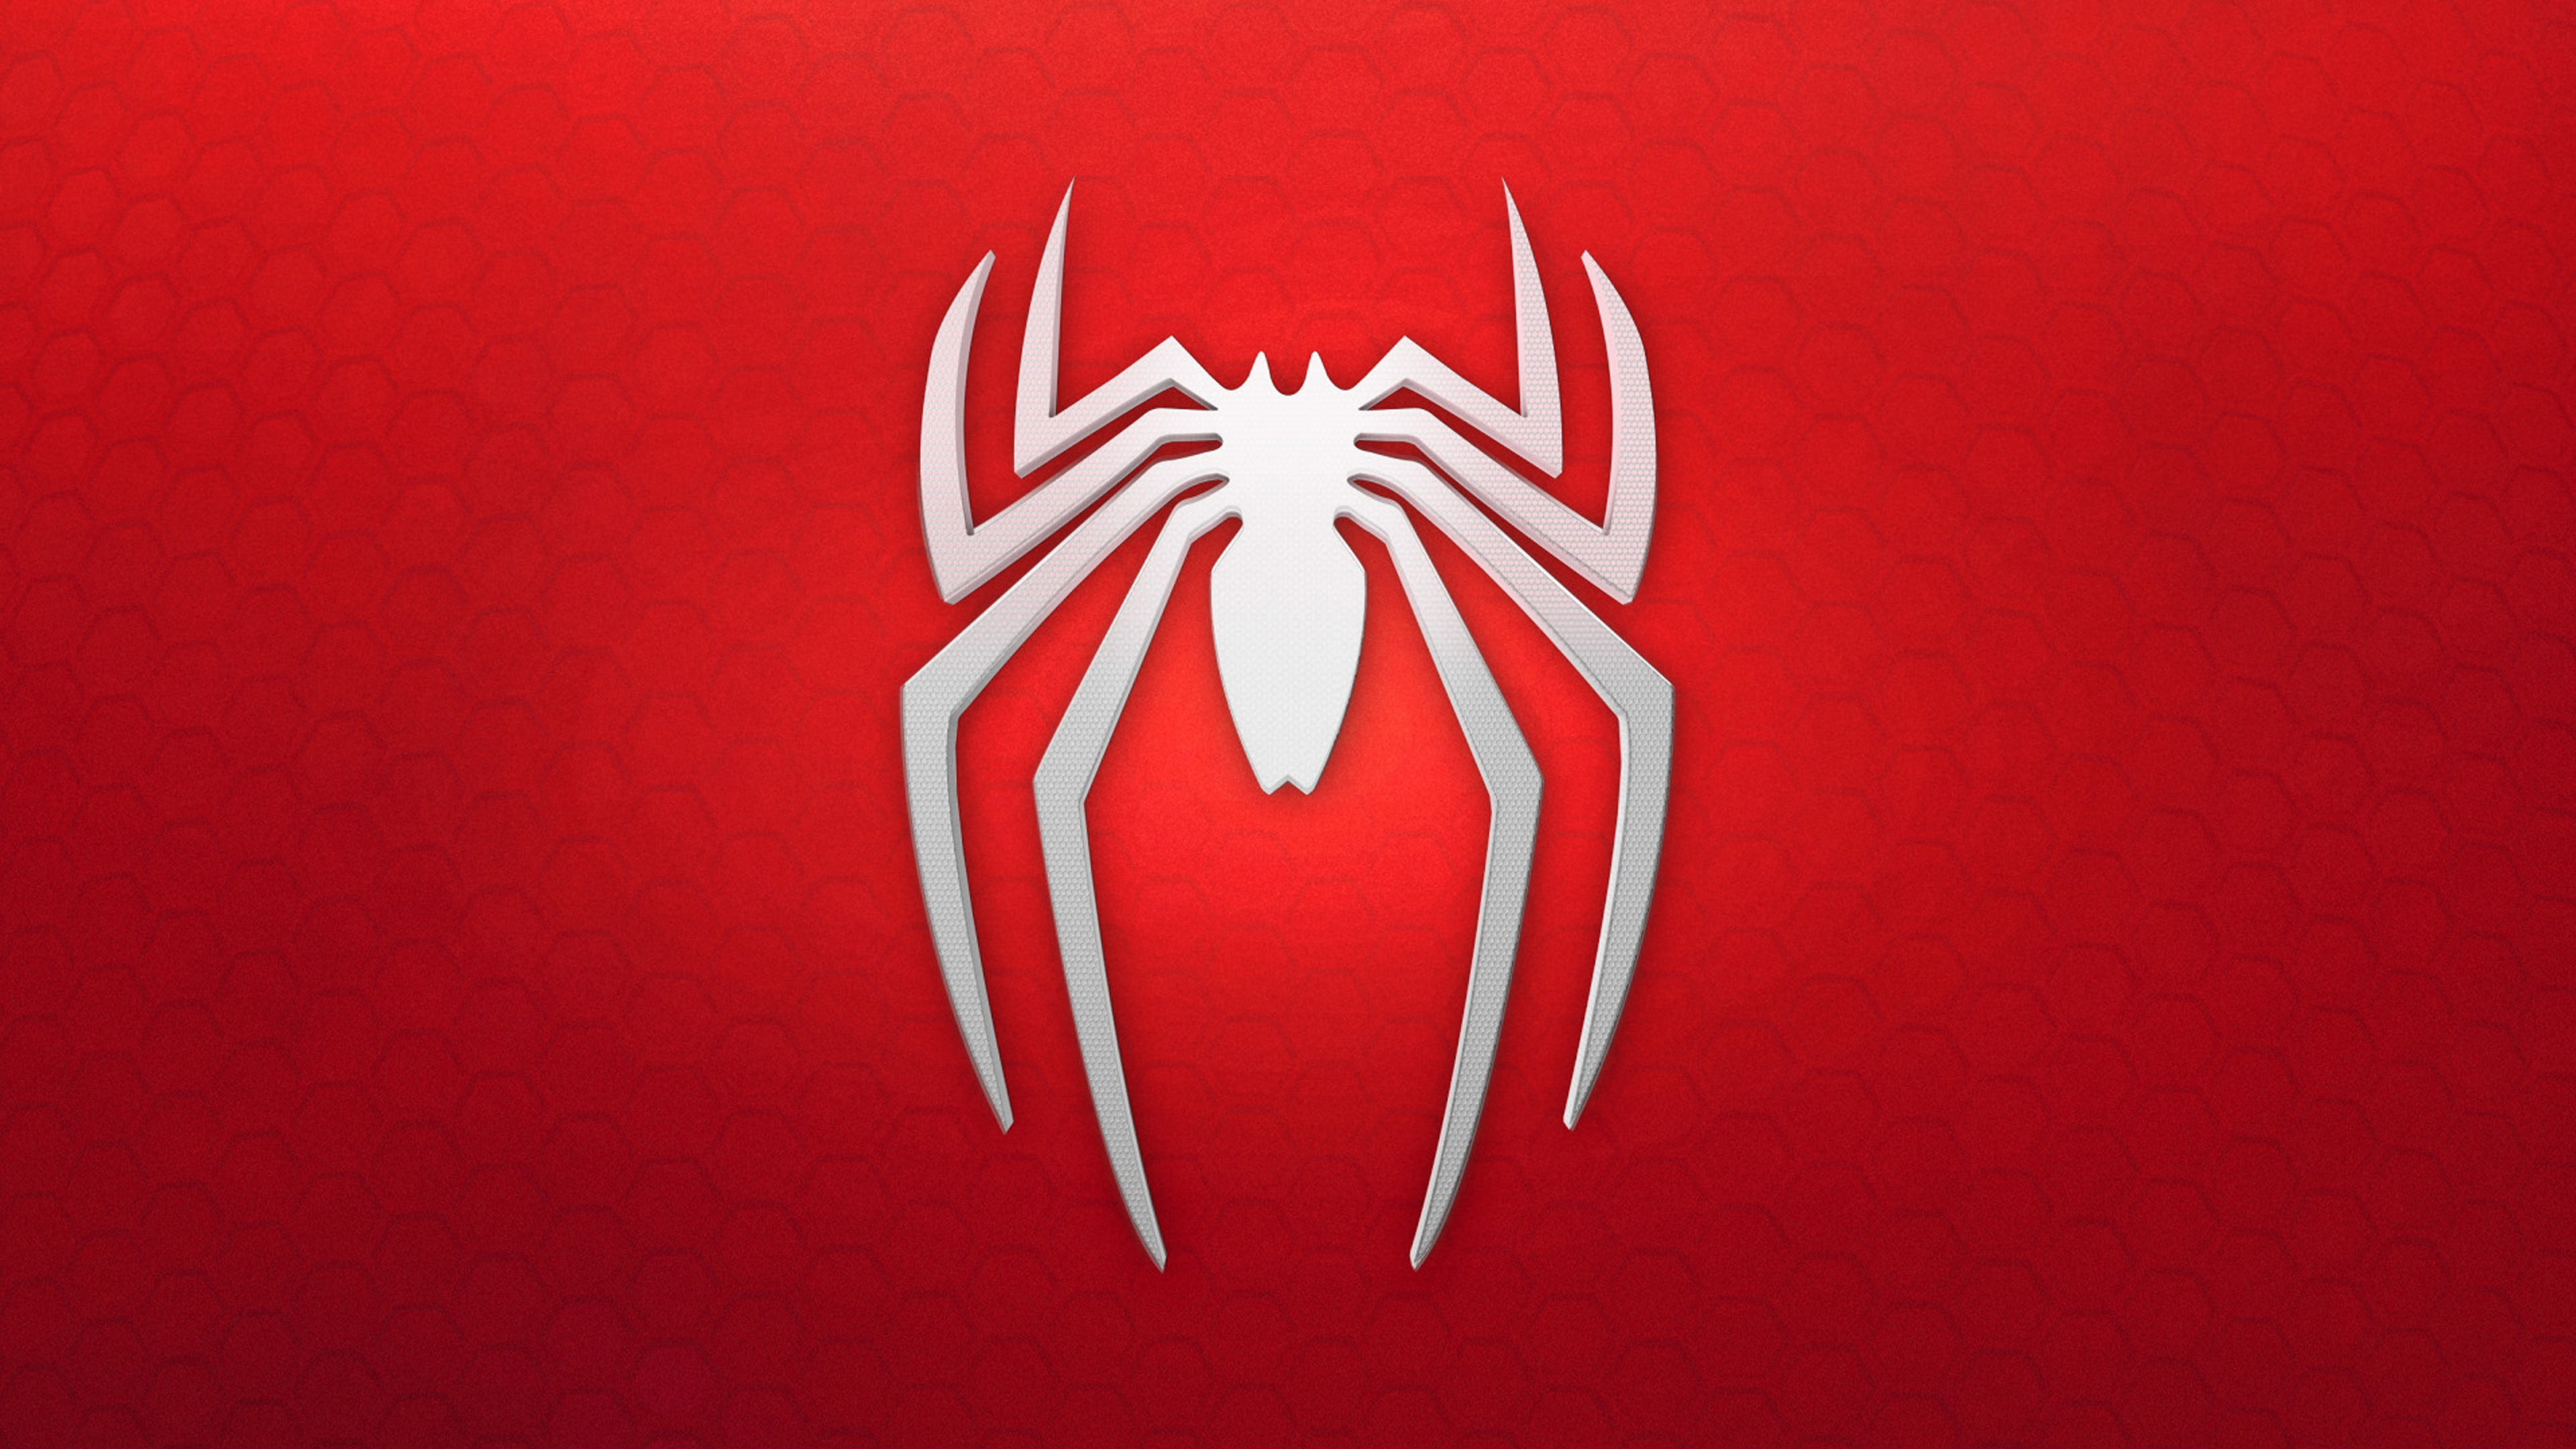 wallpaper spiderman logo background red white games